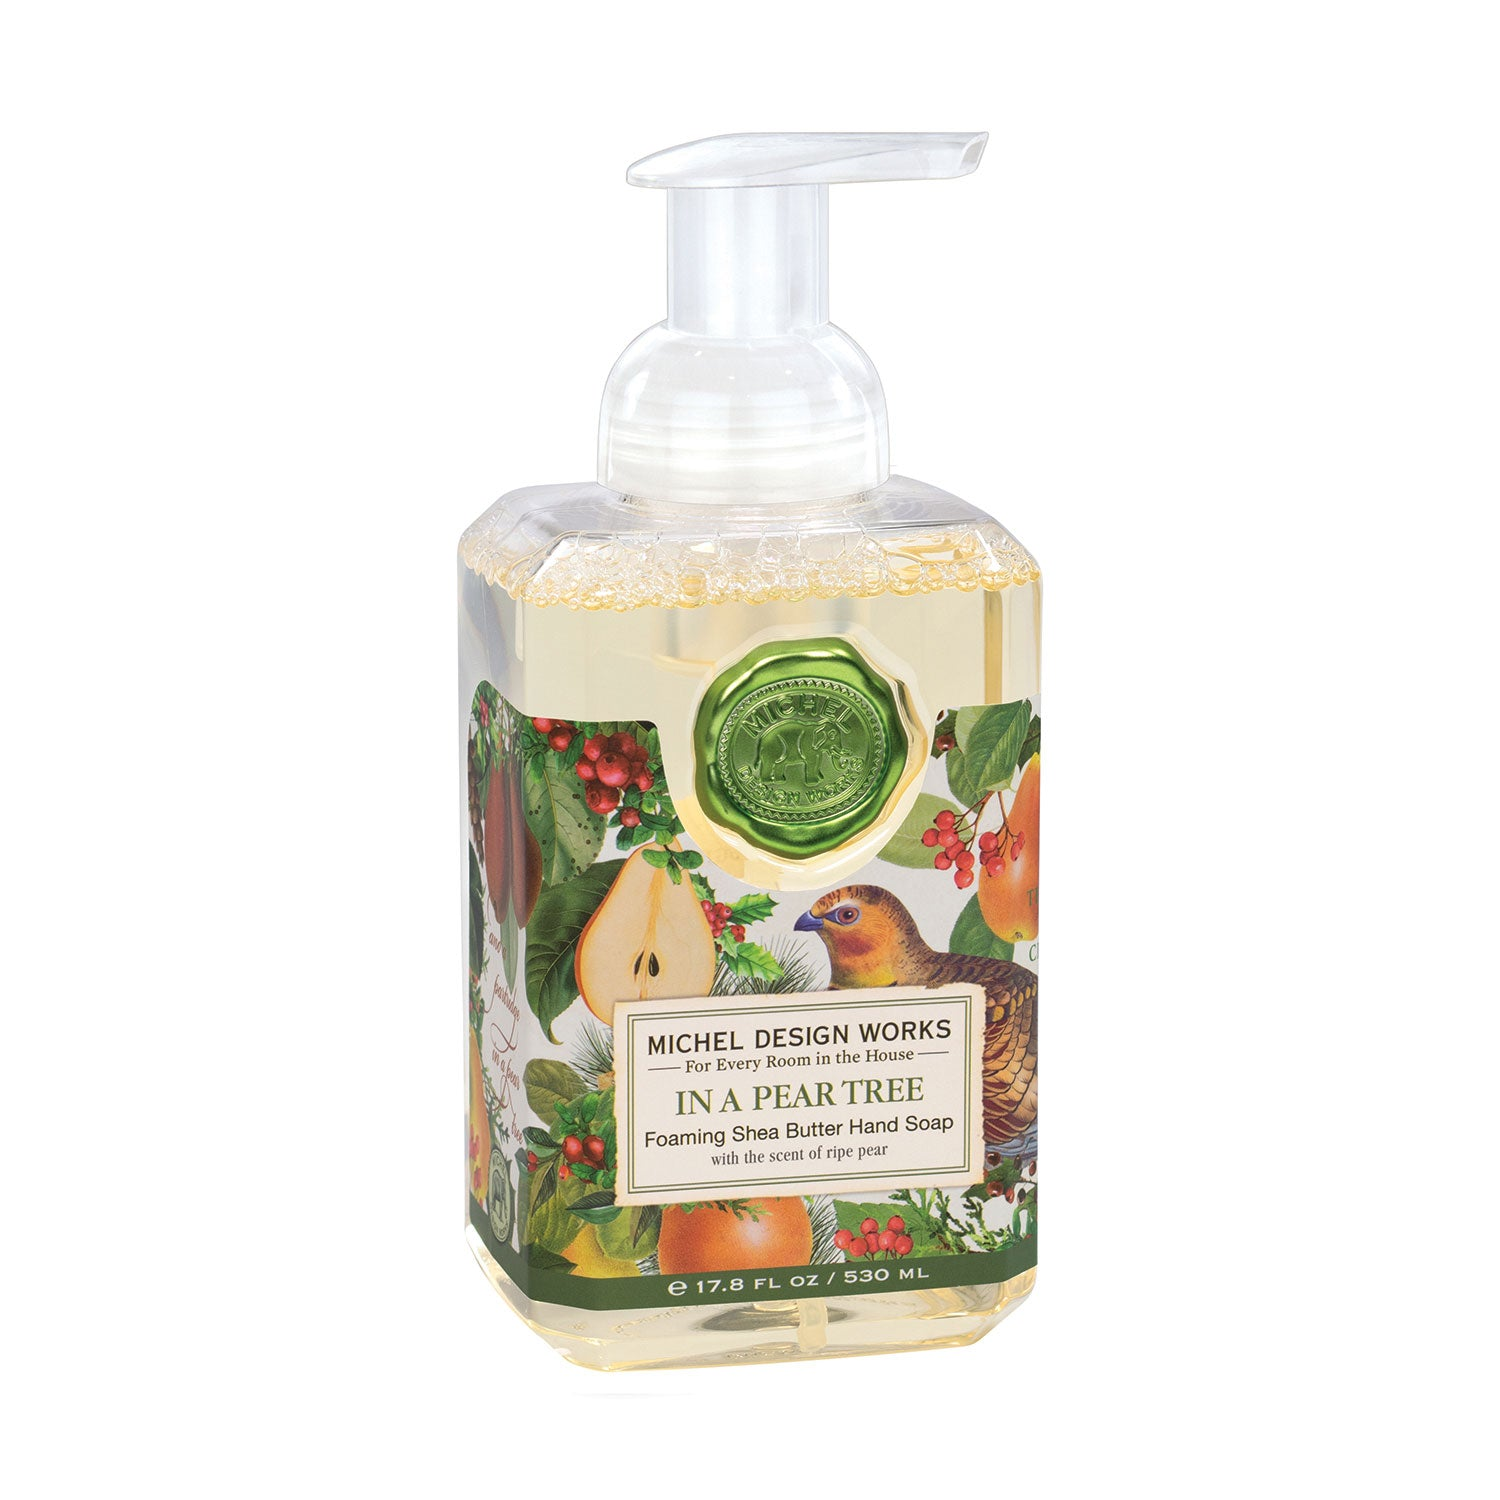 Michel Design Works In a Pear Tree Foaming Hand Soap